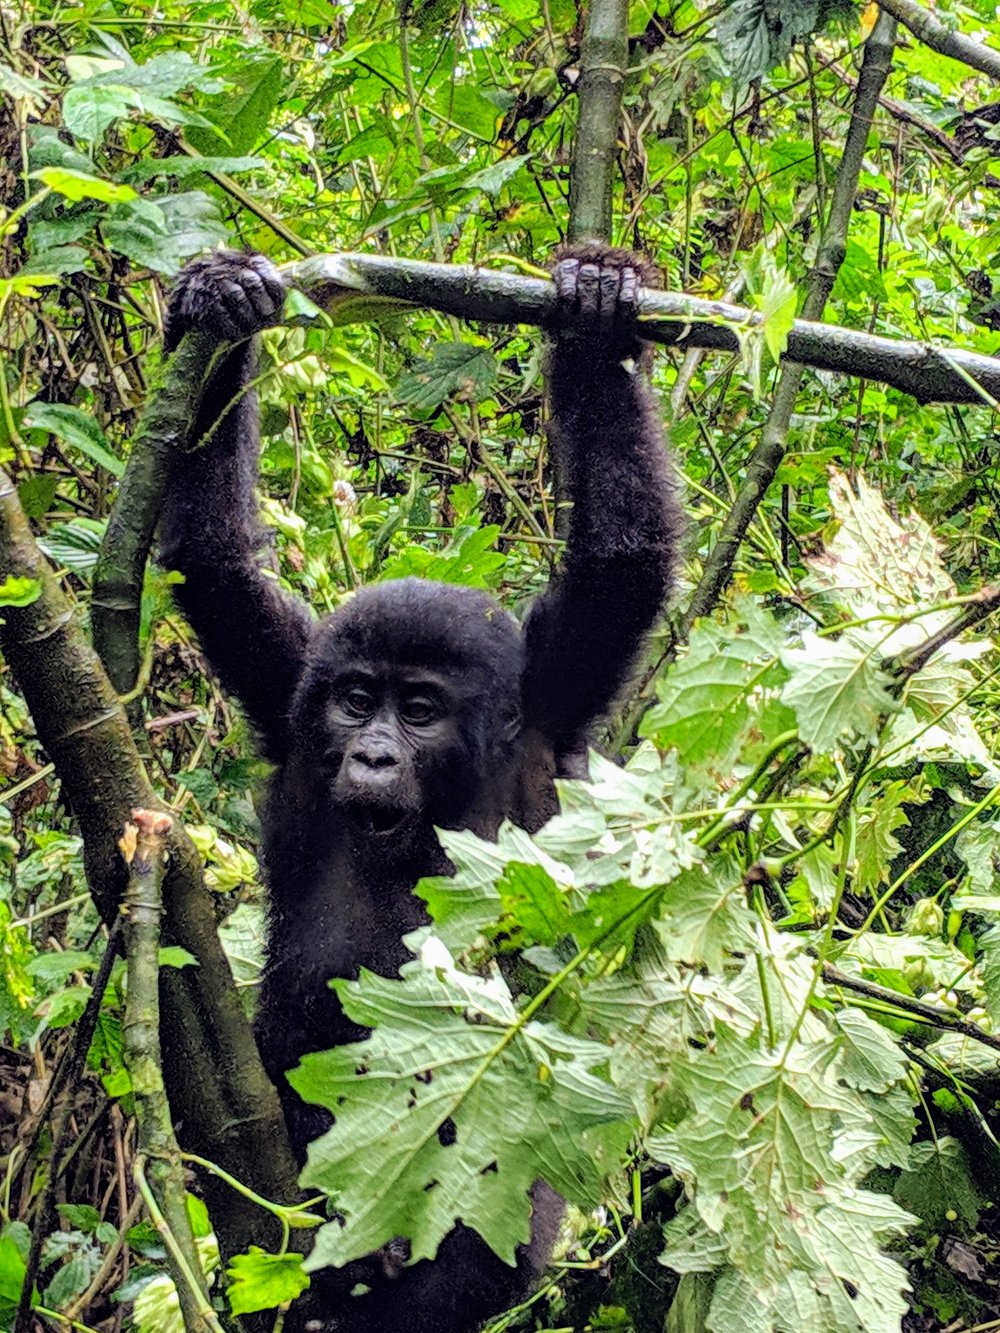 A young gorilla in Bwindi Impenetrable National Park. Photographer: Elisabeth Engl